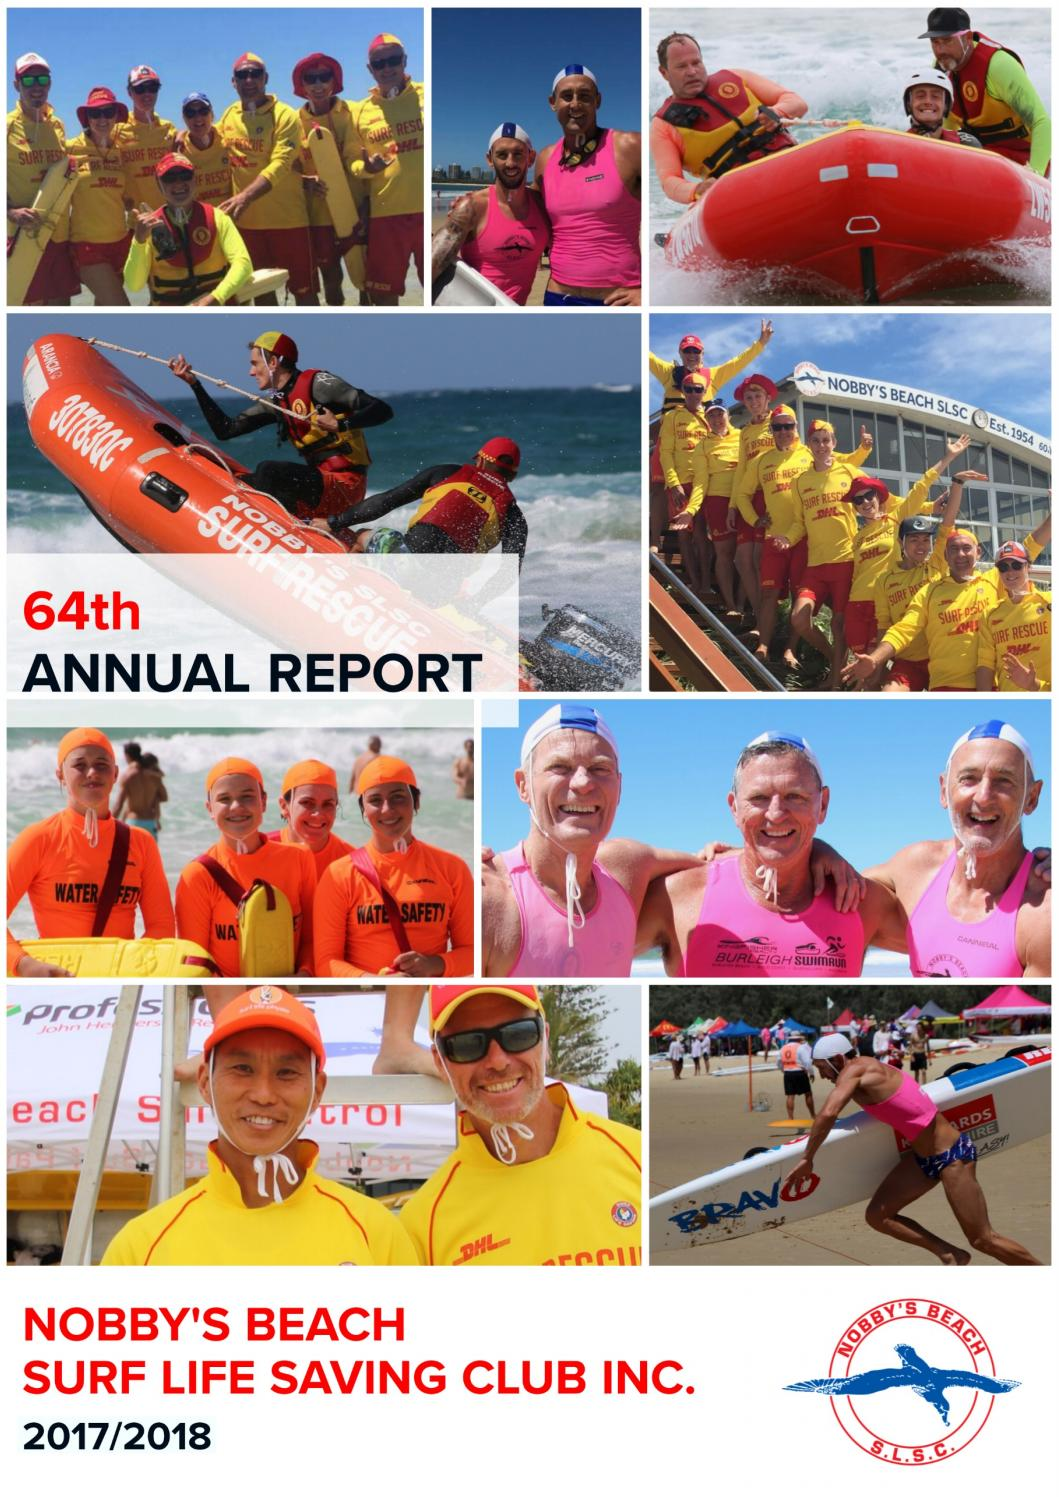 Nobby's Beach Surf Life Saving Club Annual Report 2017/18 by Nobby's